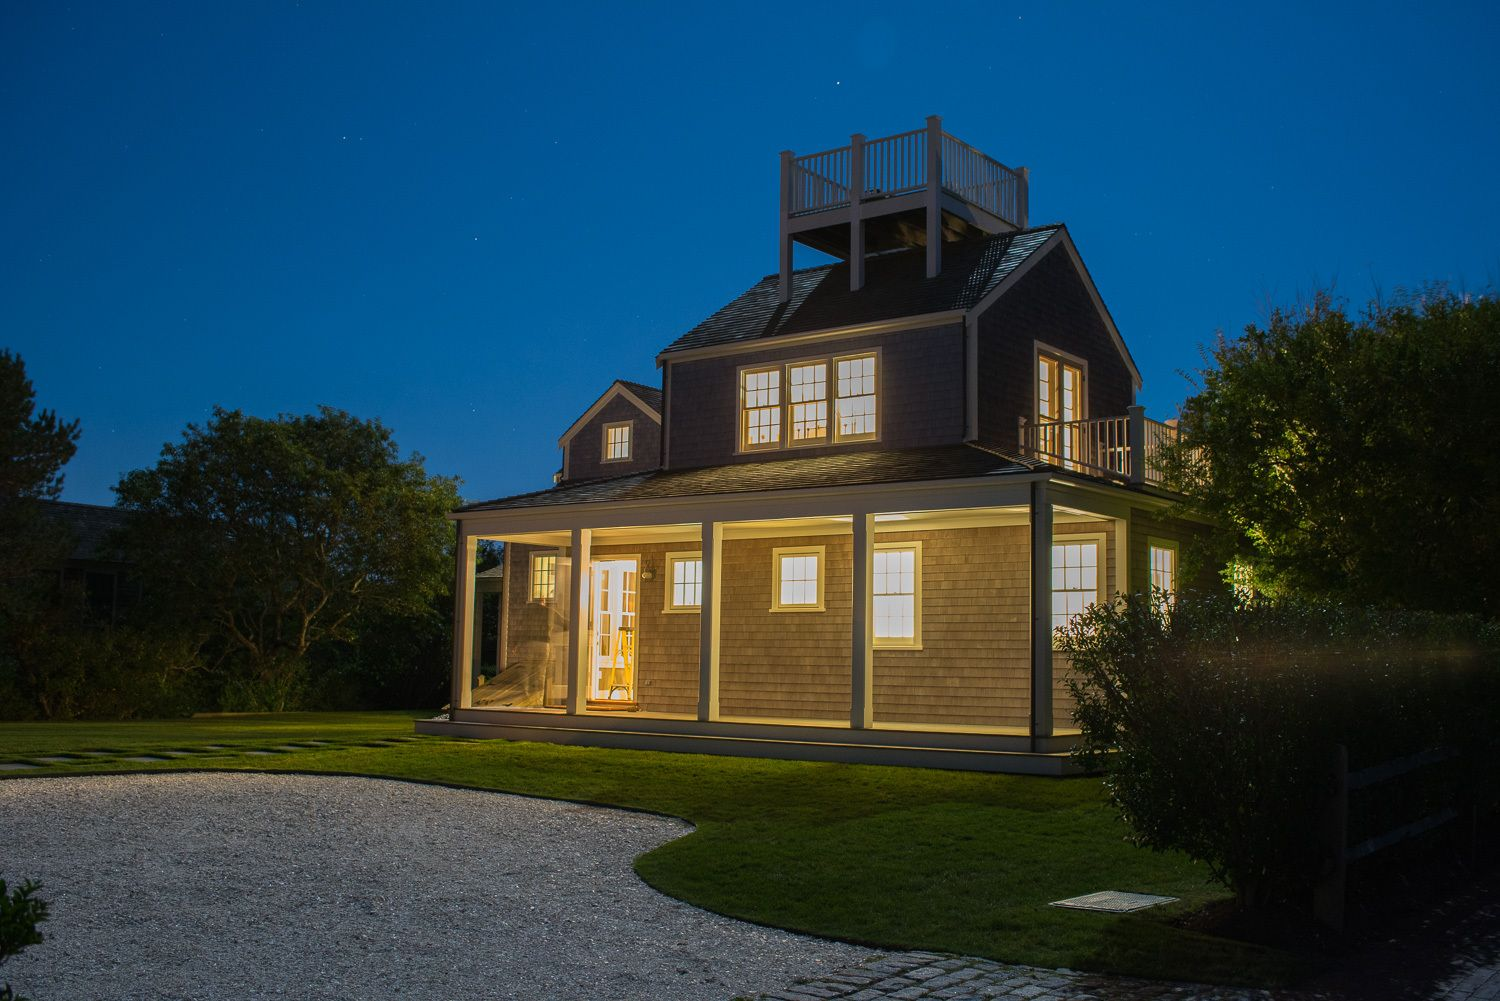 John Corbett architectural photography - Nantucket house exterior